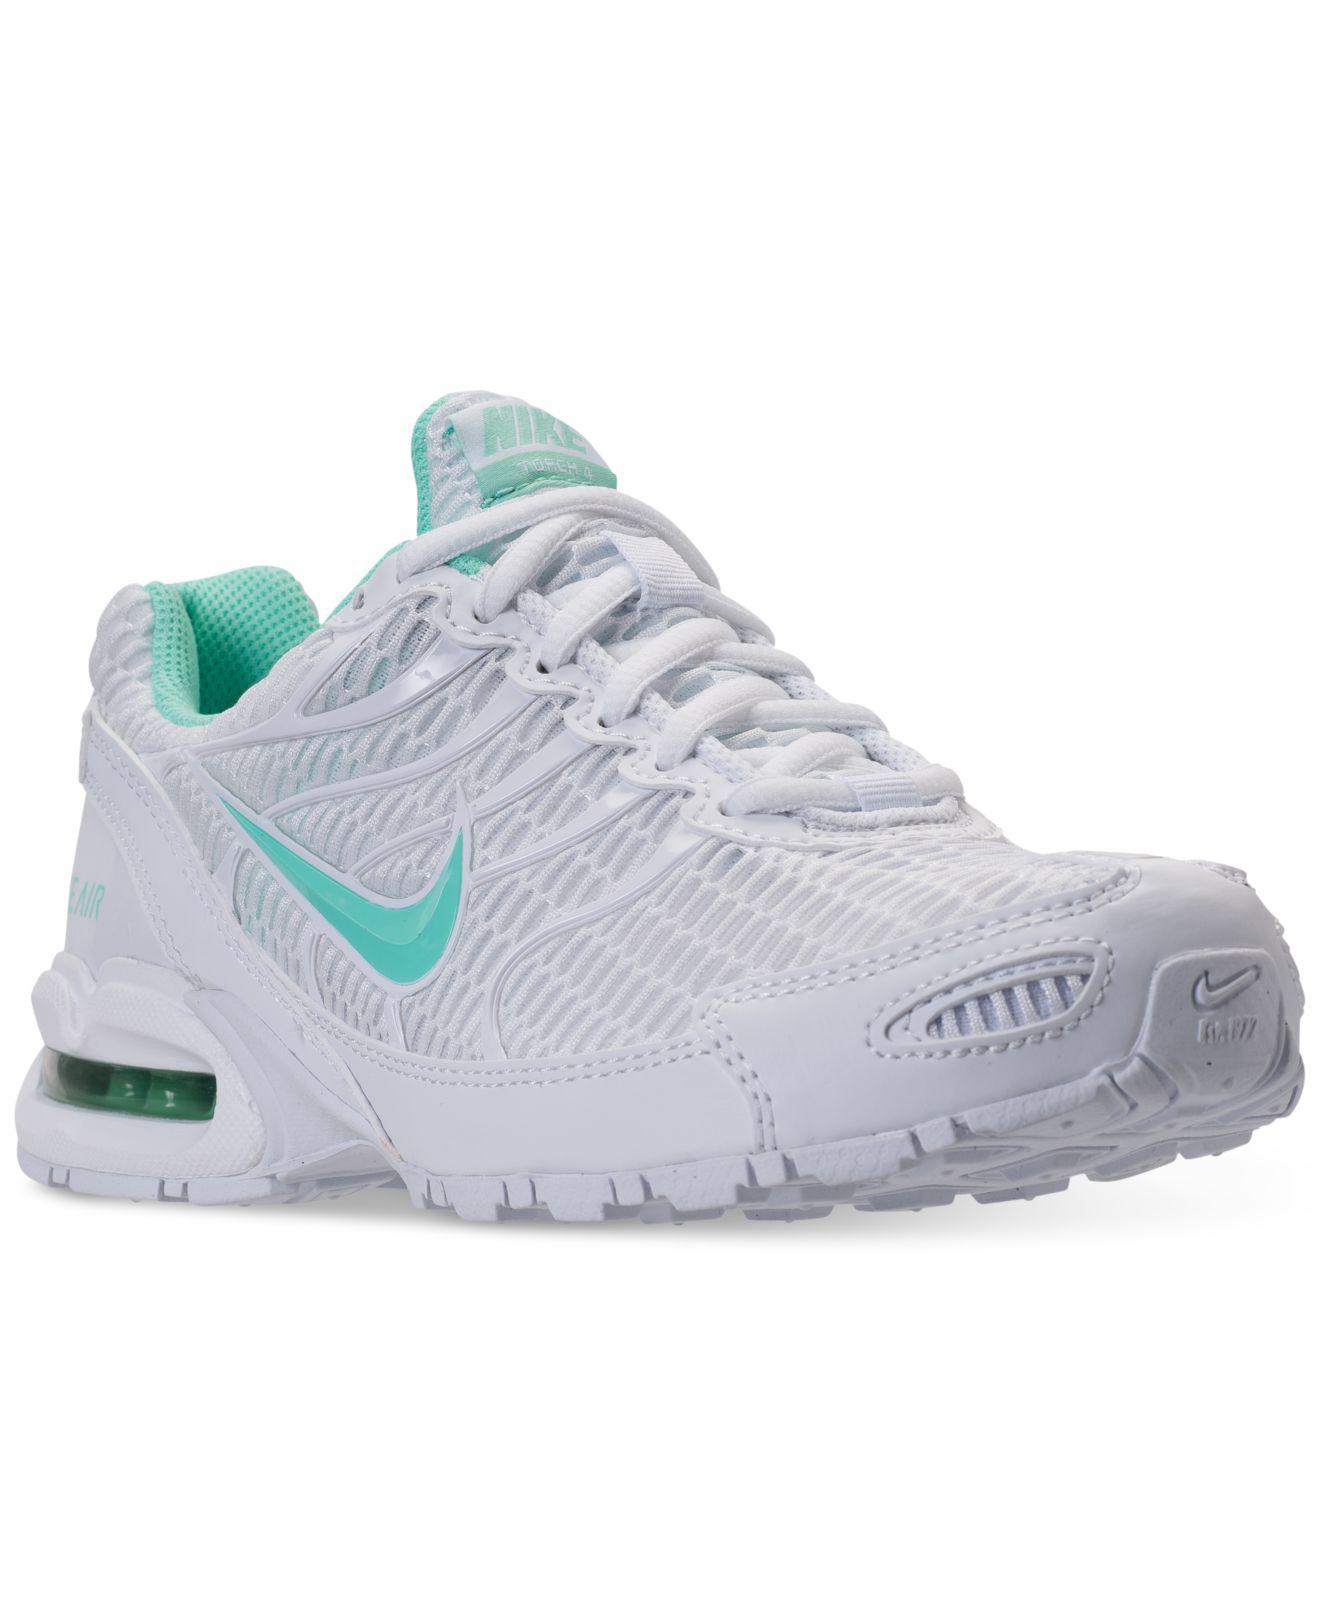 online store 76c3b cfb65 Nike - Multicolor Women s Air Max Torch 4 Running Sneakers From Finish Line  - Lyst. View fullscreen